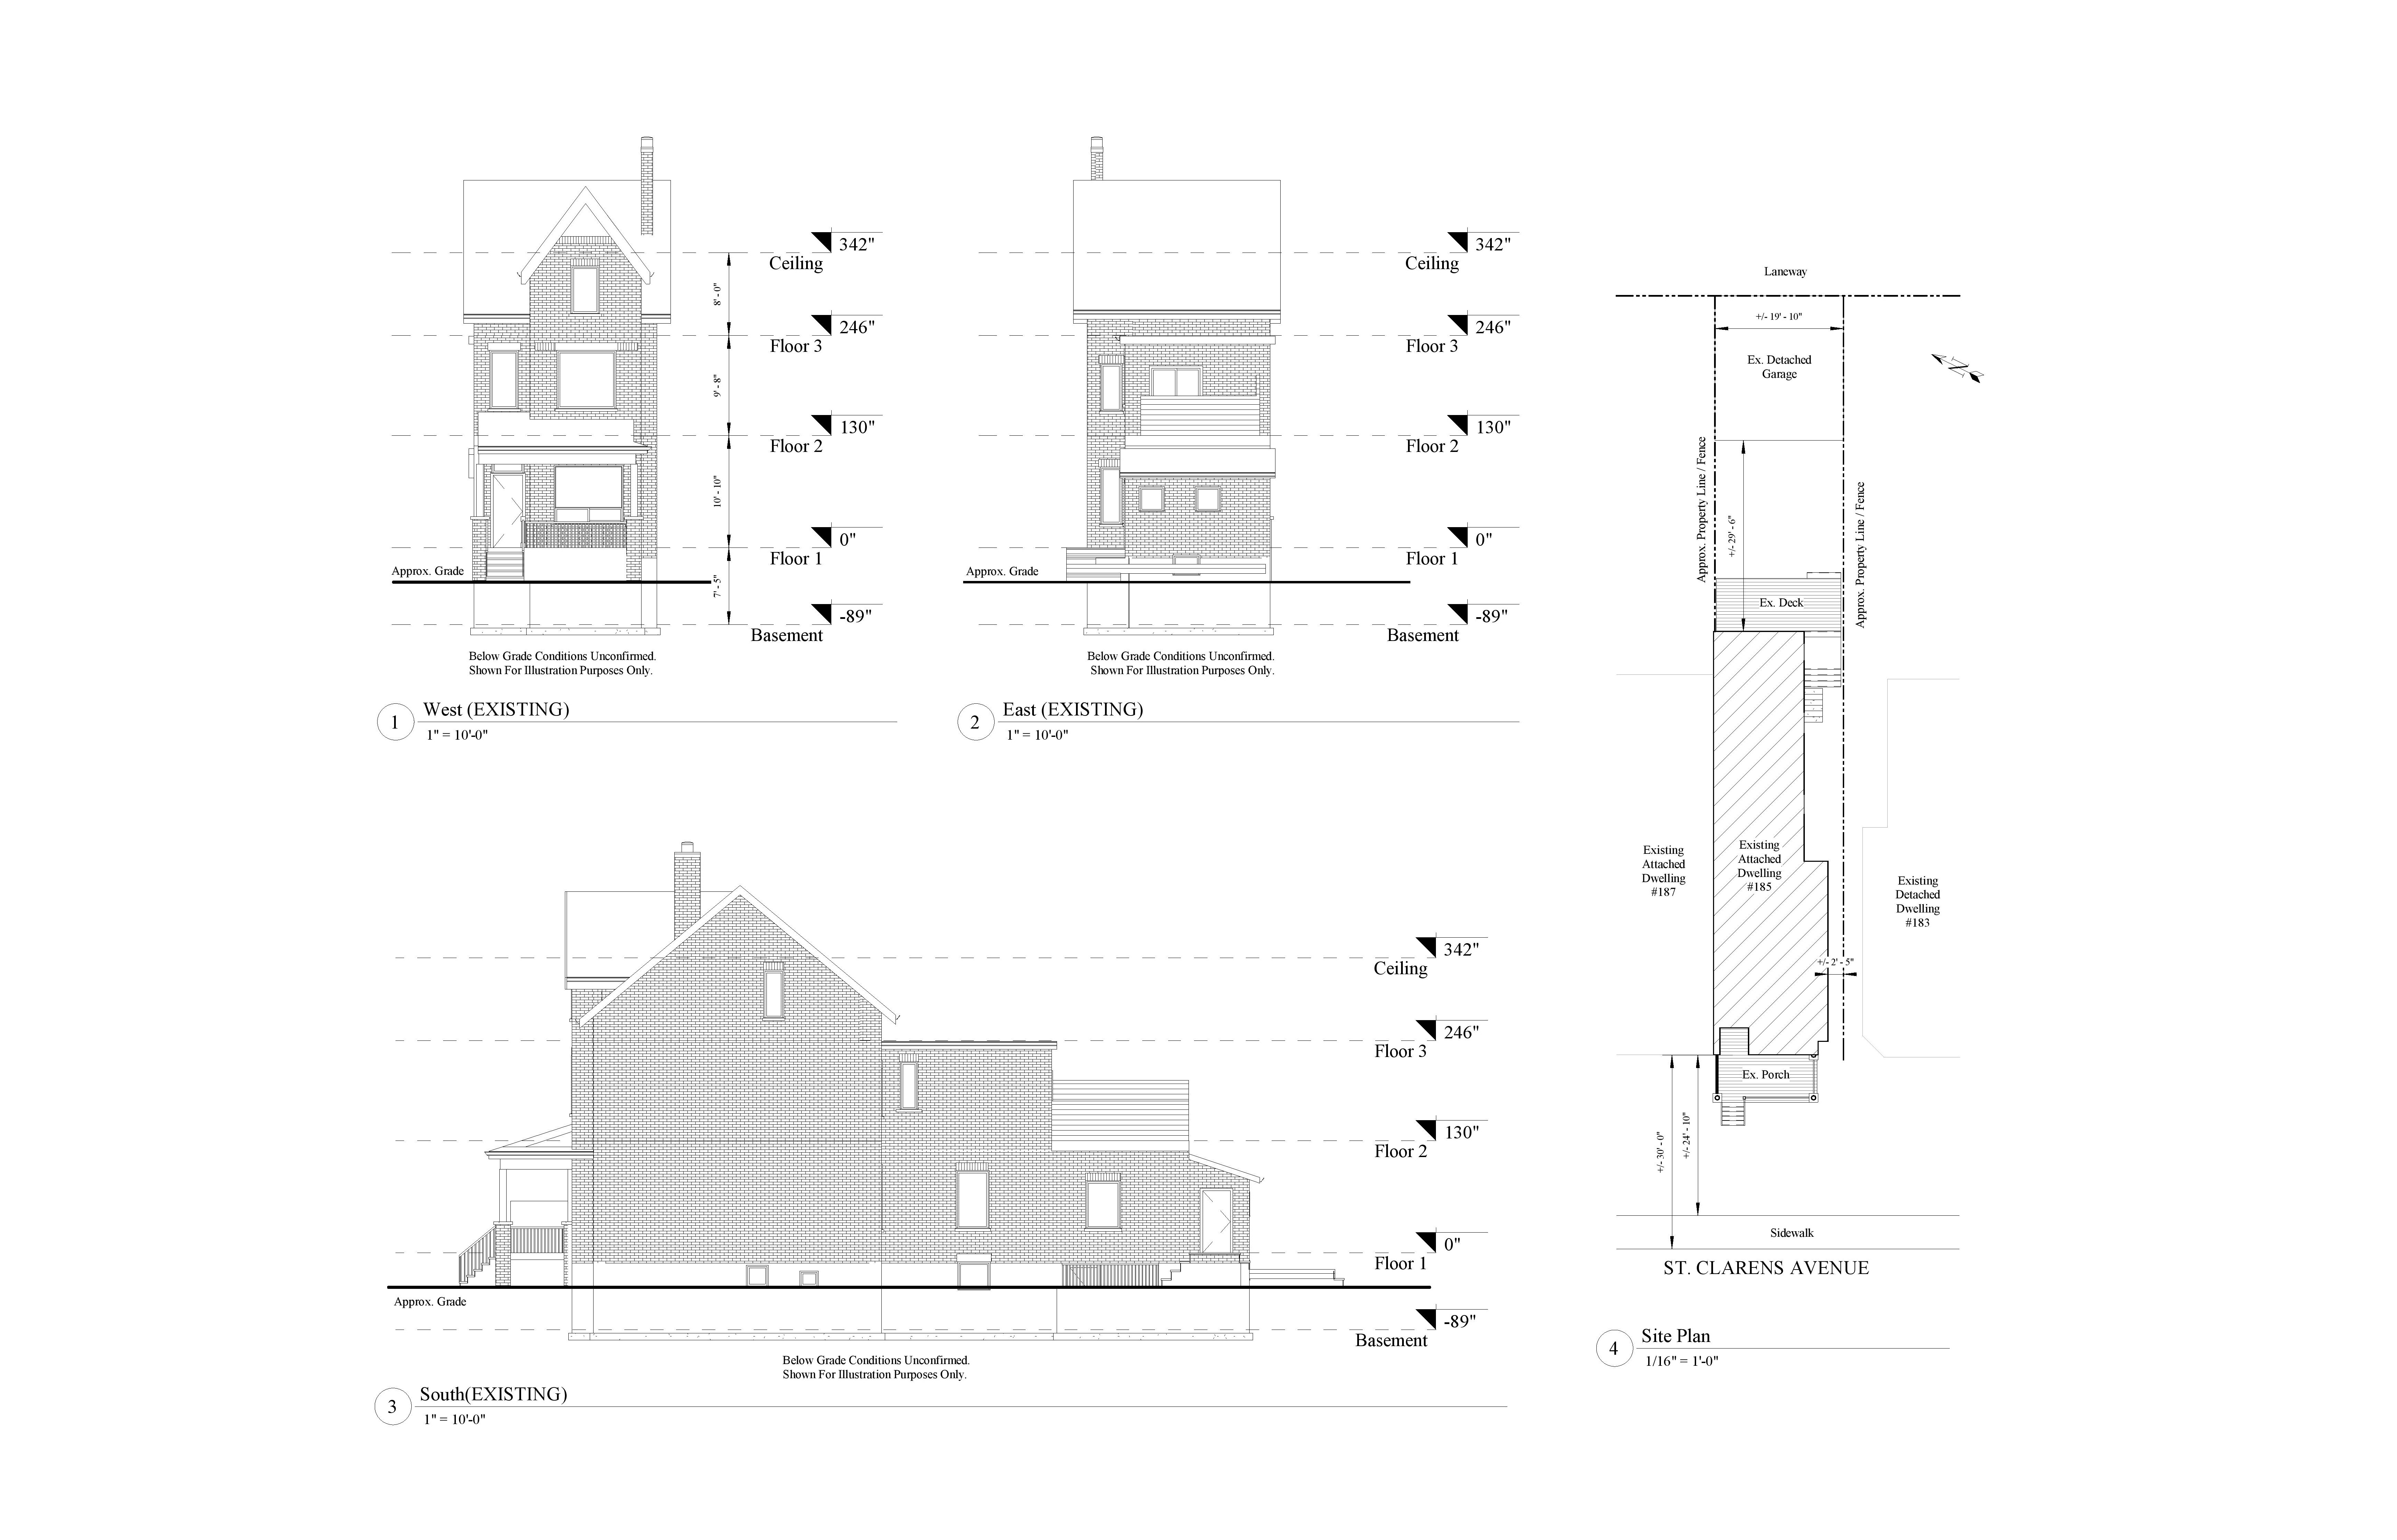 AutoCad drawings of 2D elevation models of the front, rear and side view of a three level residential house including the basement.